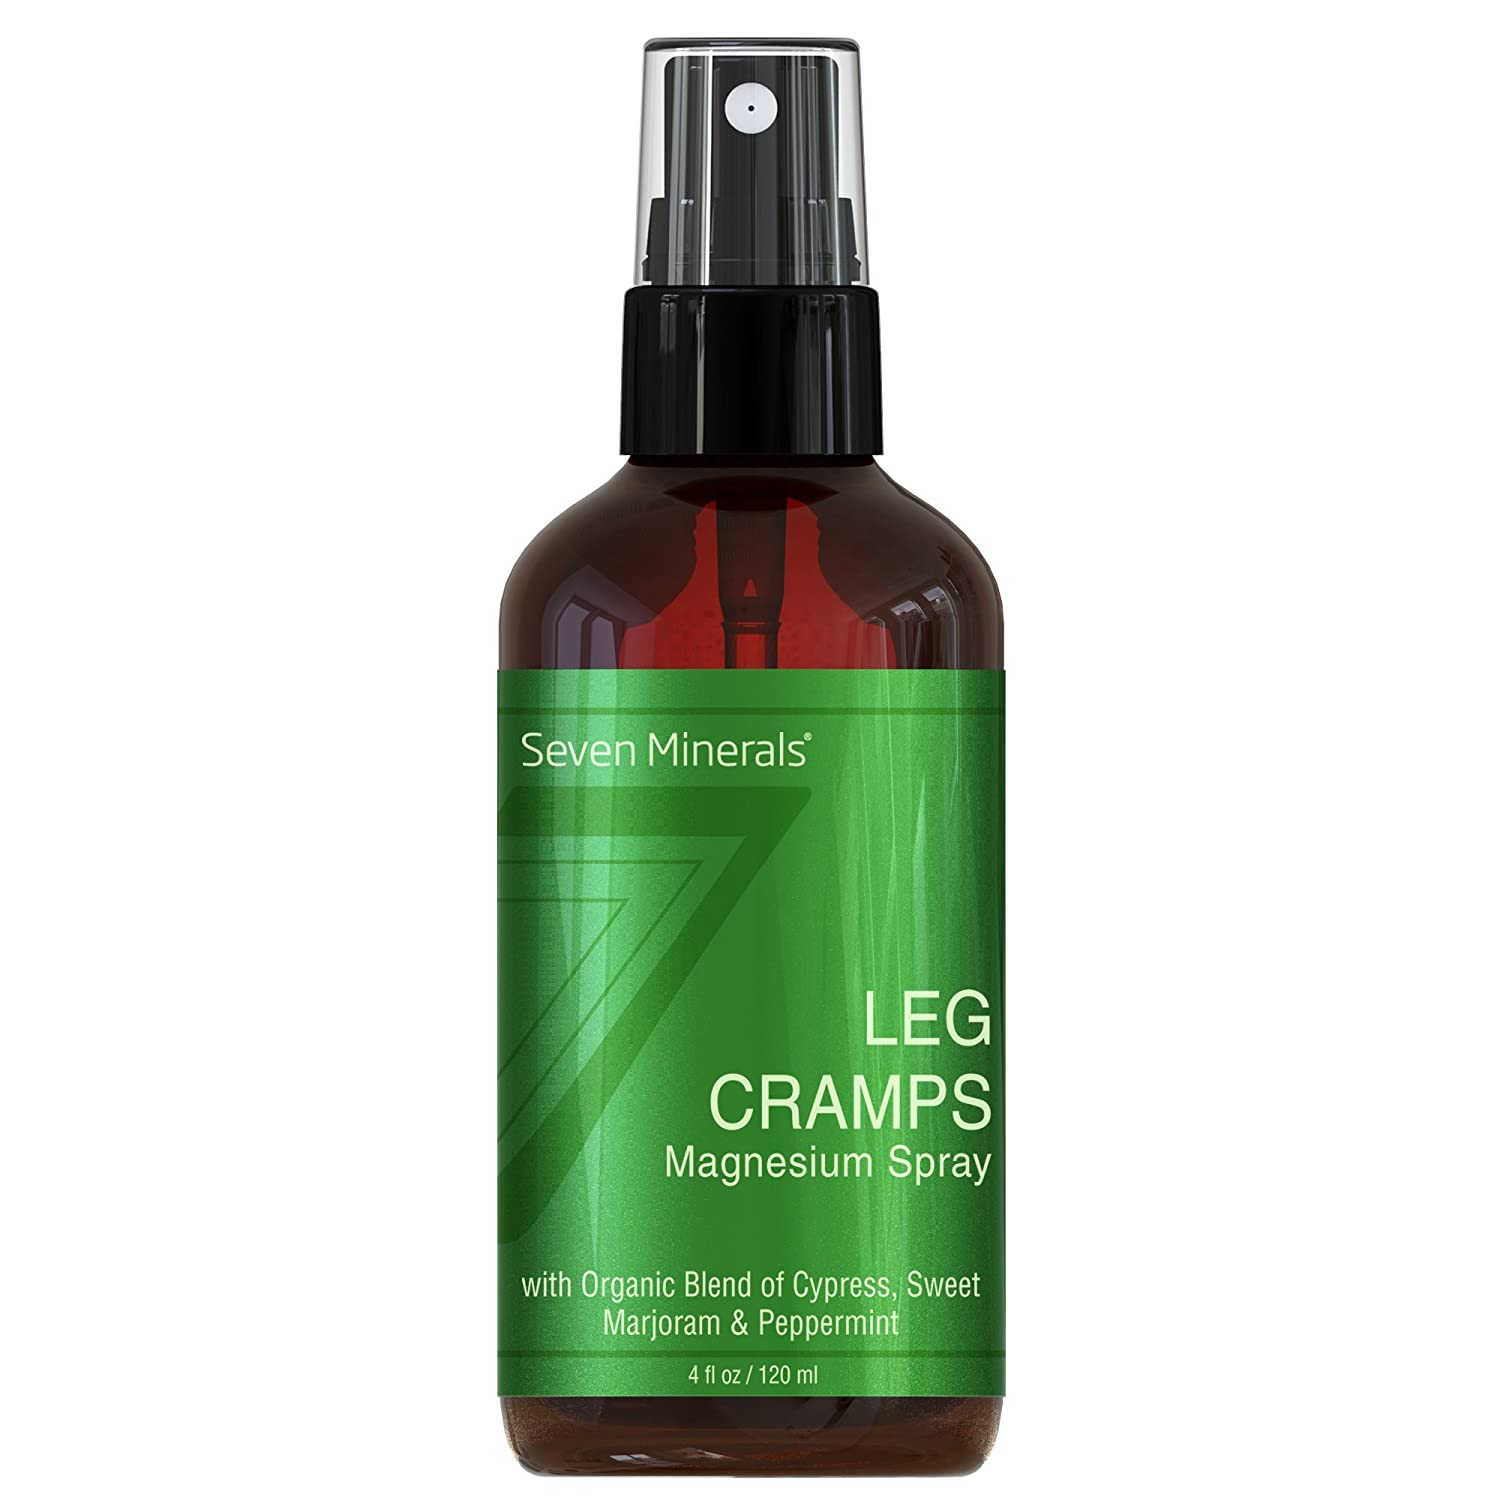 All Natural Magnesium Leg Cramp Pain Relief Spray with USDA Organic  Cypress, Sweet Marjoram & Peppermint Oils, USA Made (4 fl oz /120ml)